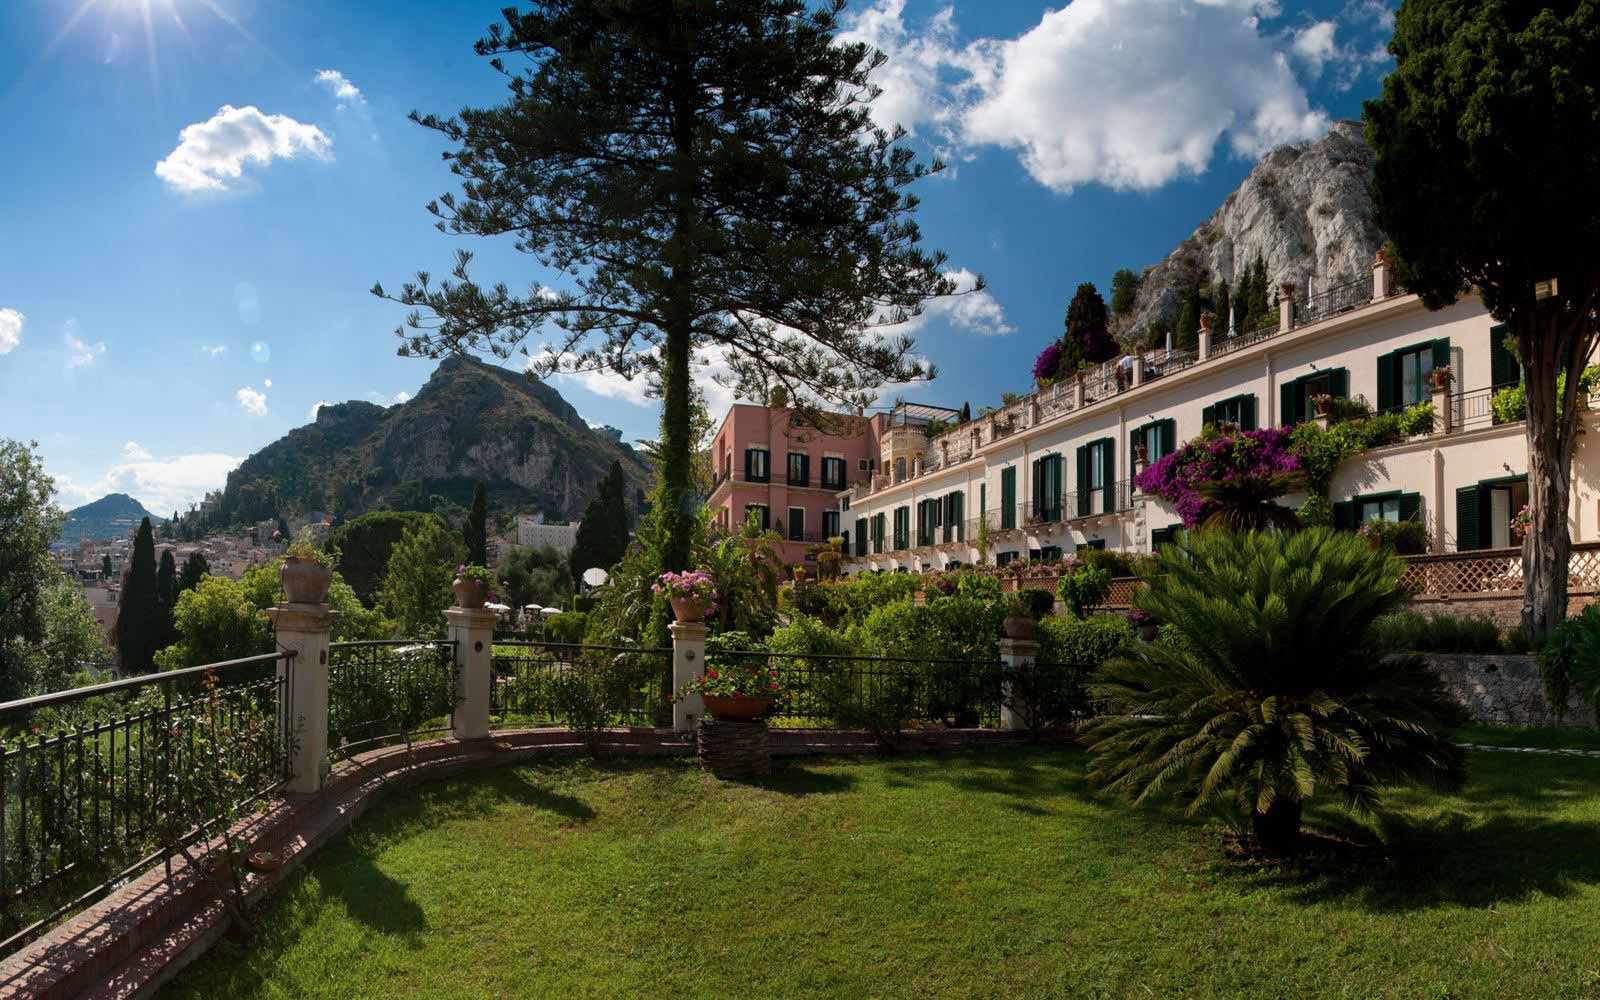 Gardens at Grand Hotel Timeo